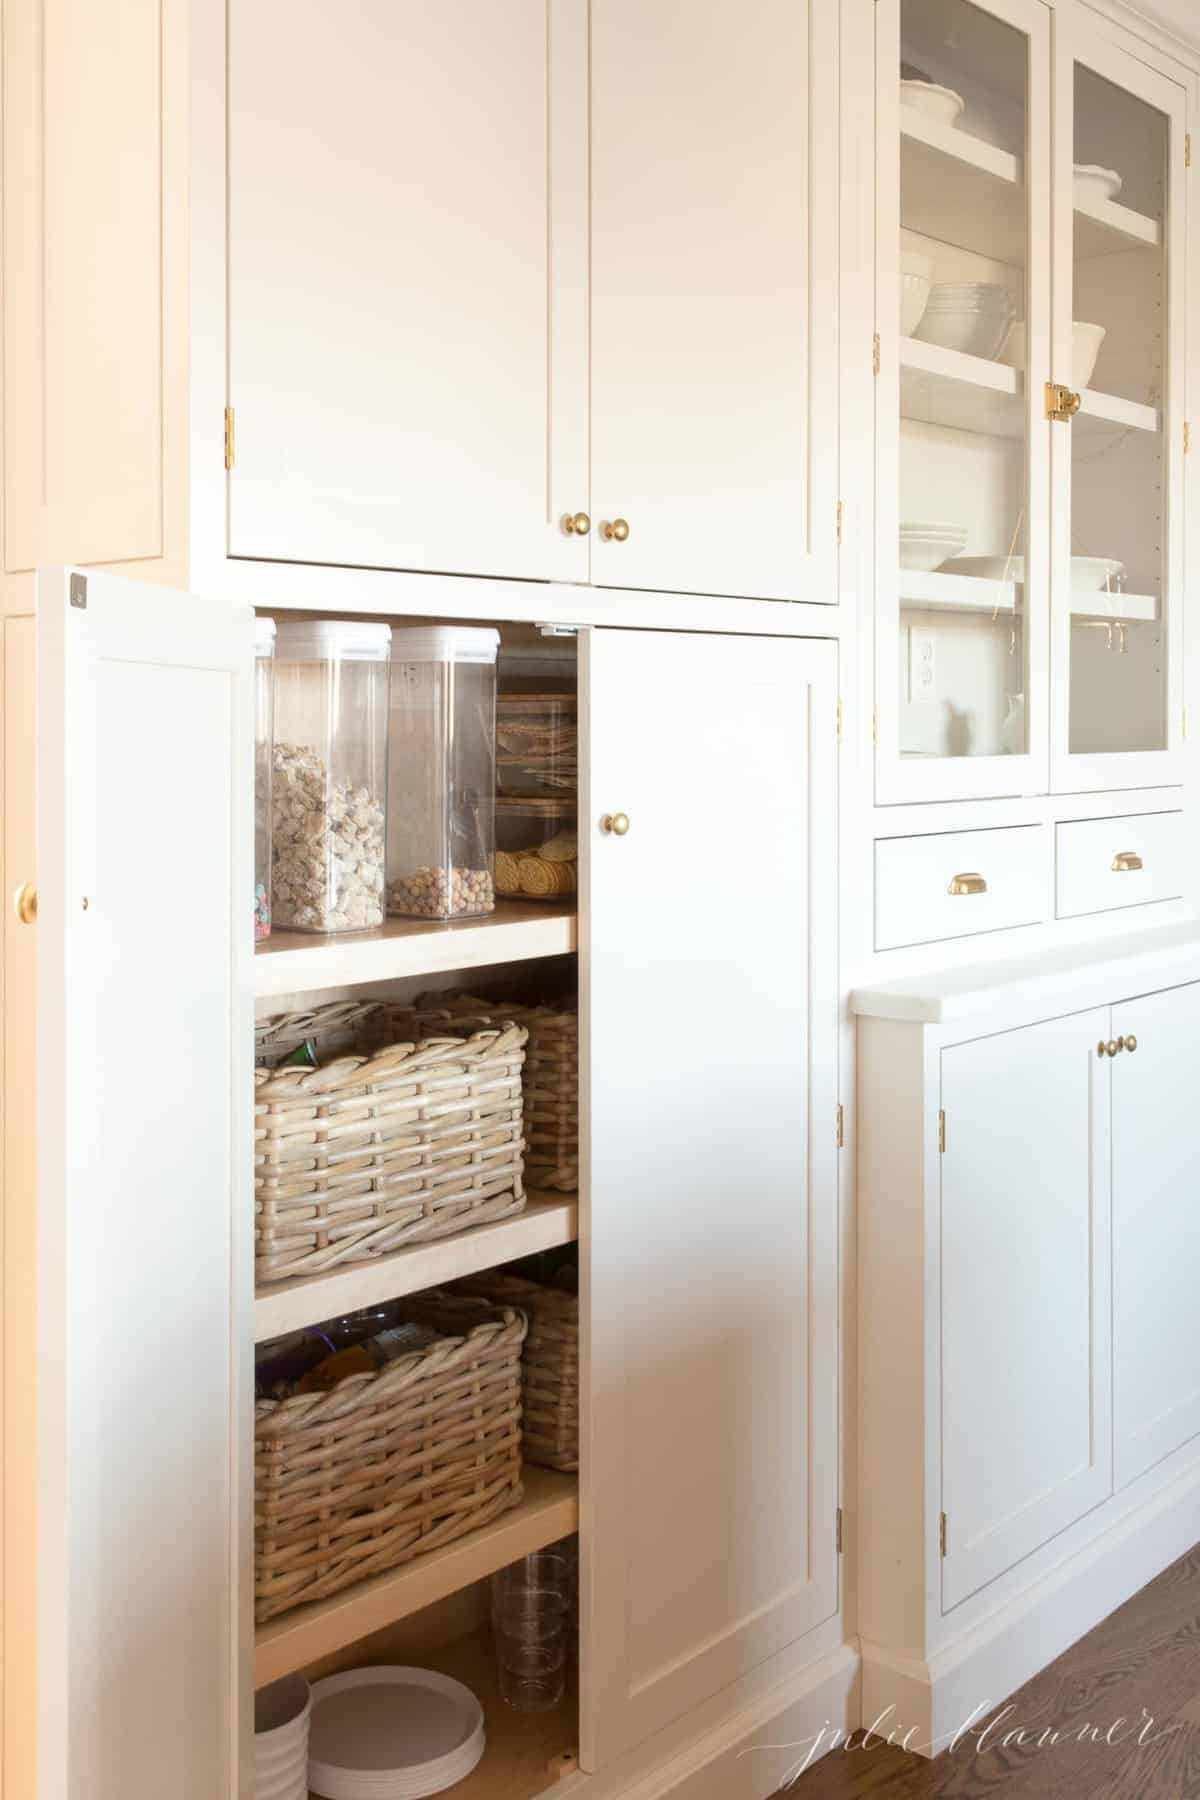 Inset kitchen cabinets with the doors open and pantry goods inside.